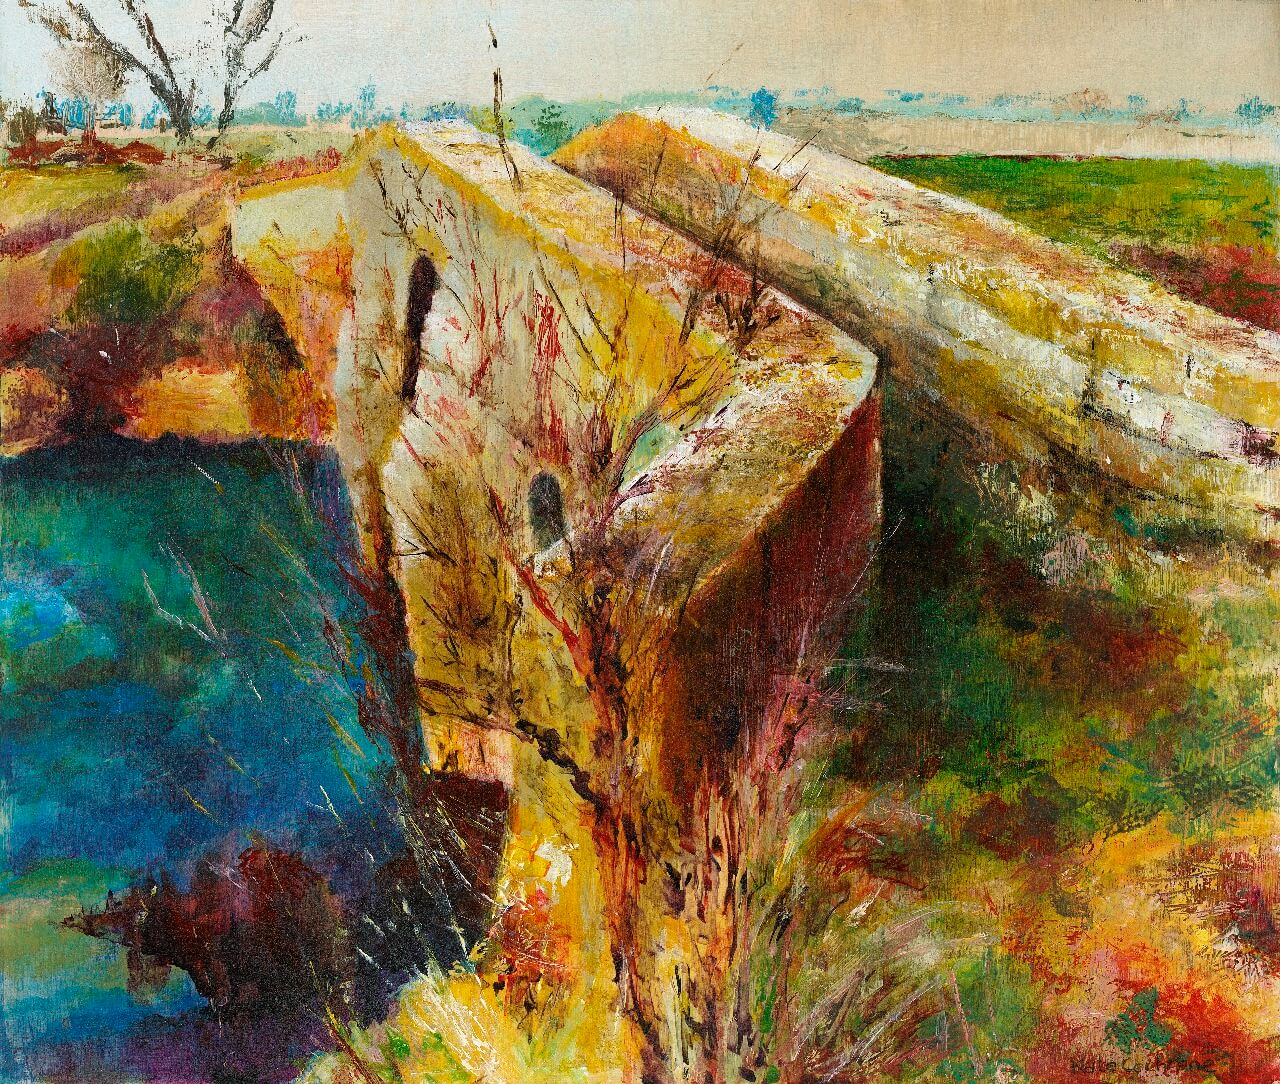 'Crossing the Yeo', Pill Bridge, Ilcester